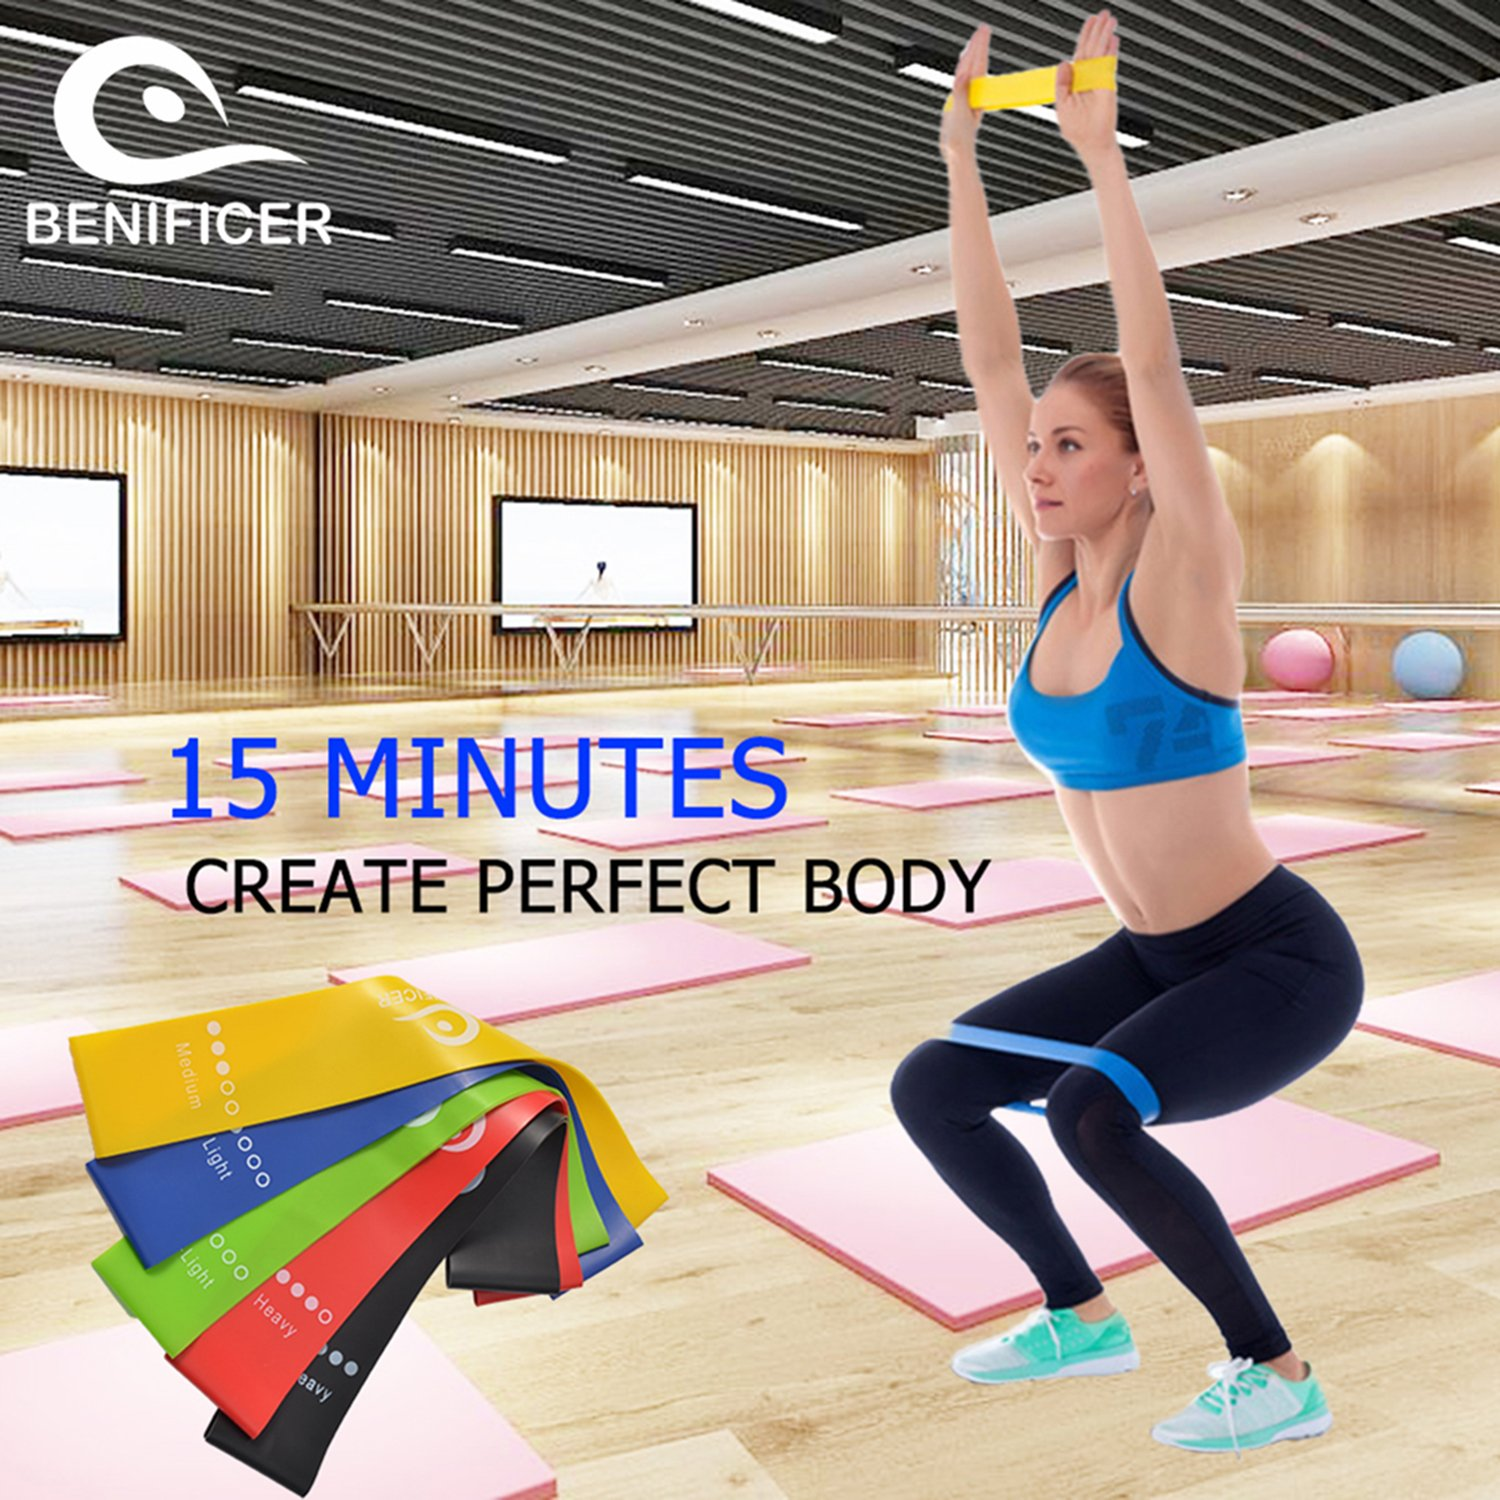 Benificer Core Sliders and Resistance Bands, Set of 5 Exercise Loop Bands with Set of 2 Double-sided Gliding Discs Workout for Fitness Home GYM Yoga,Pilates,Crossfit with Carry Bag and Instruction by Benificer (Image #4)